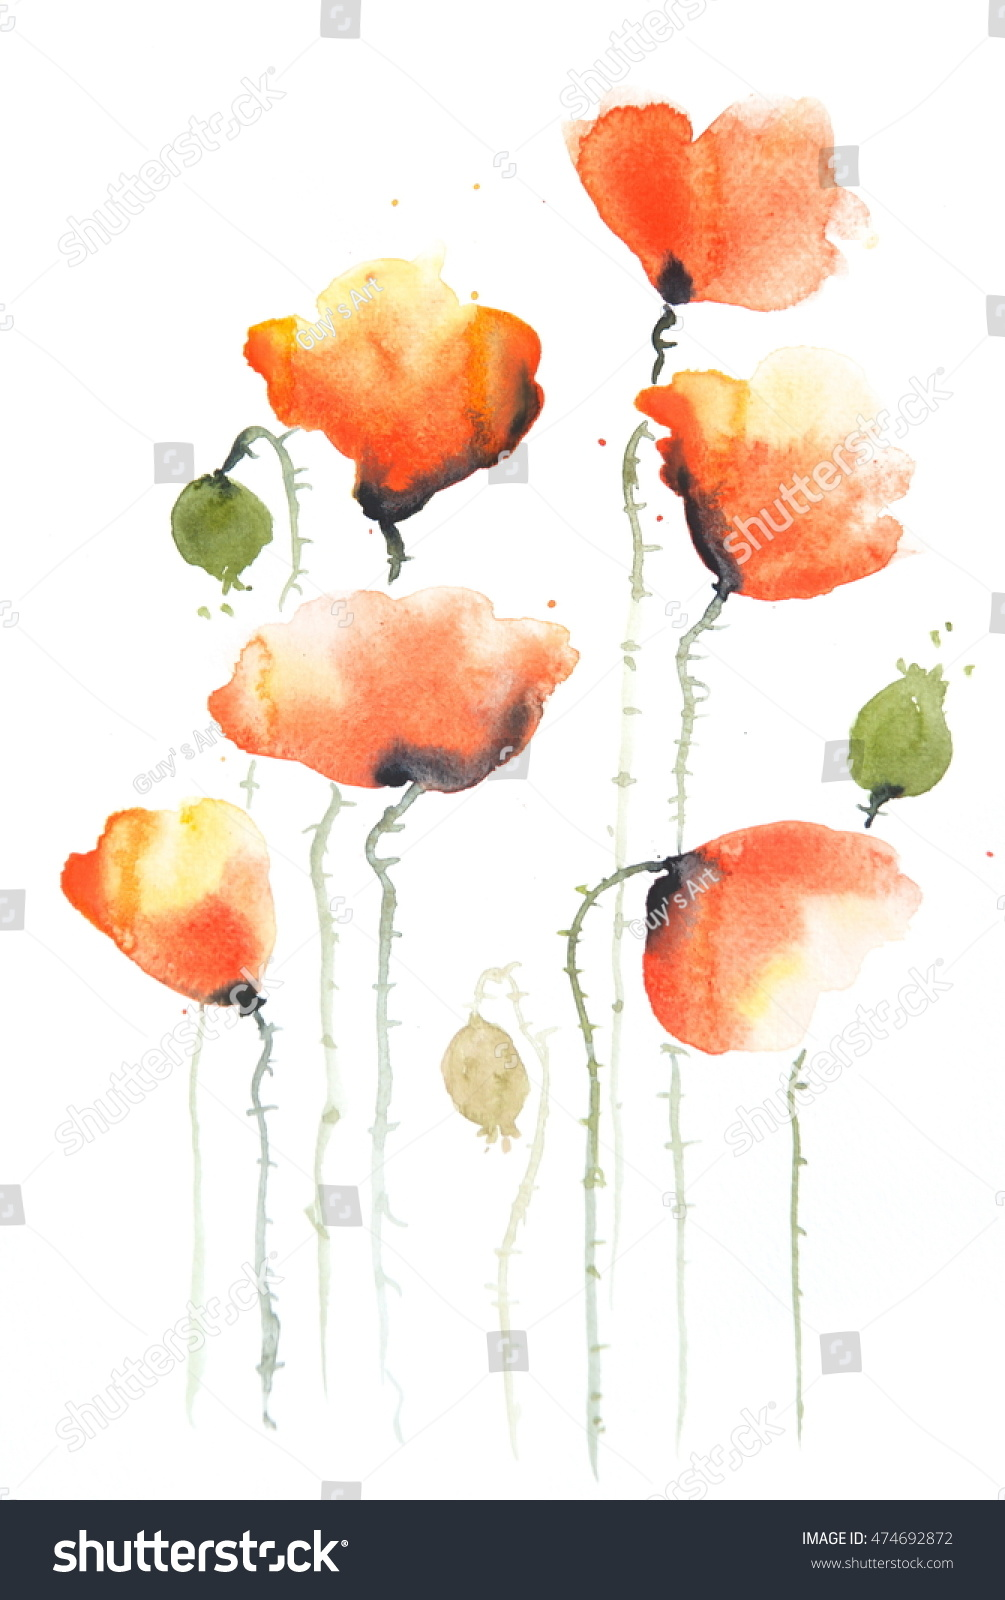 Royalty Free Stock Illustration Of Stylized Poppies On White Flower